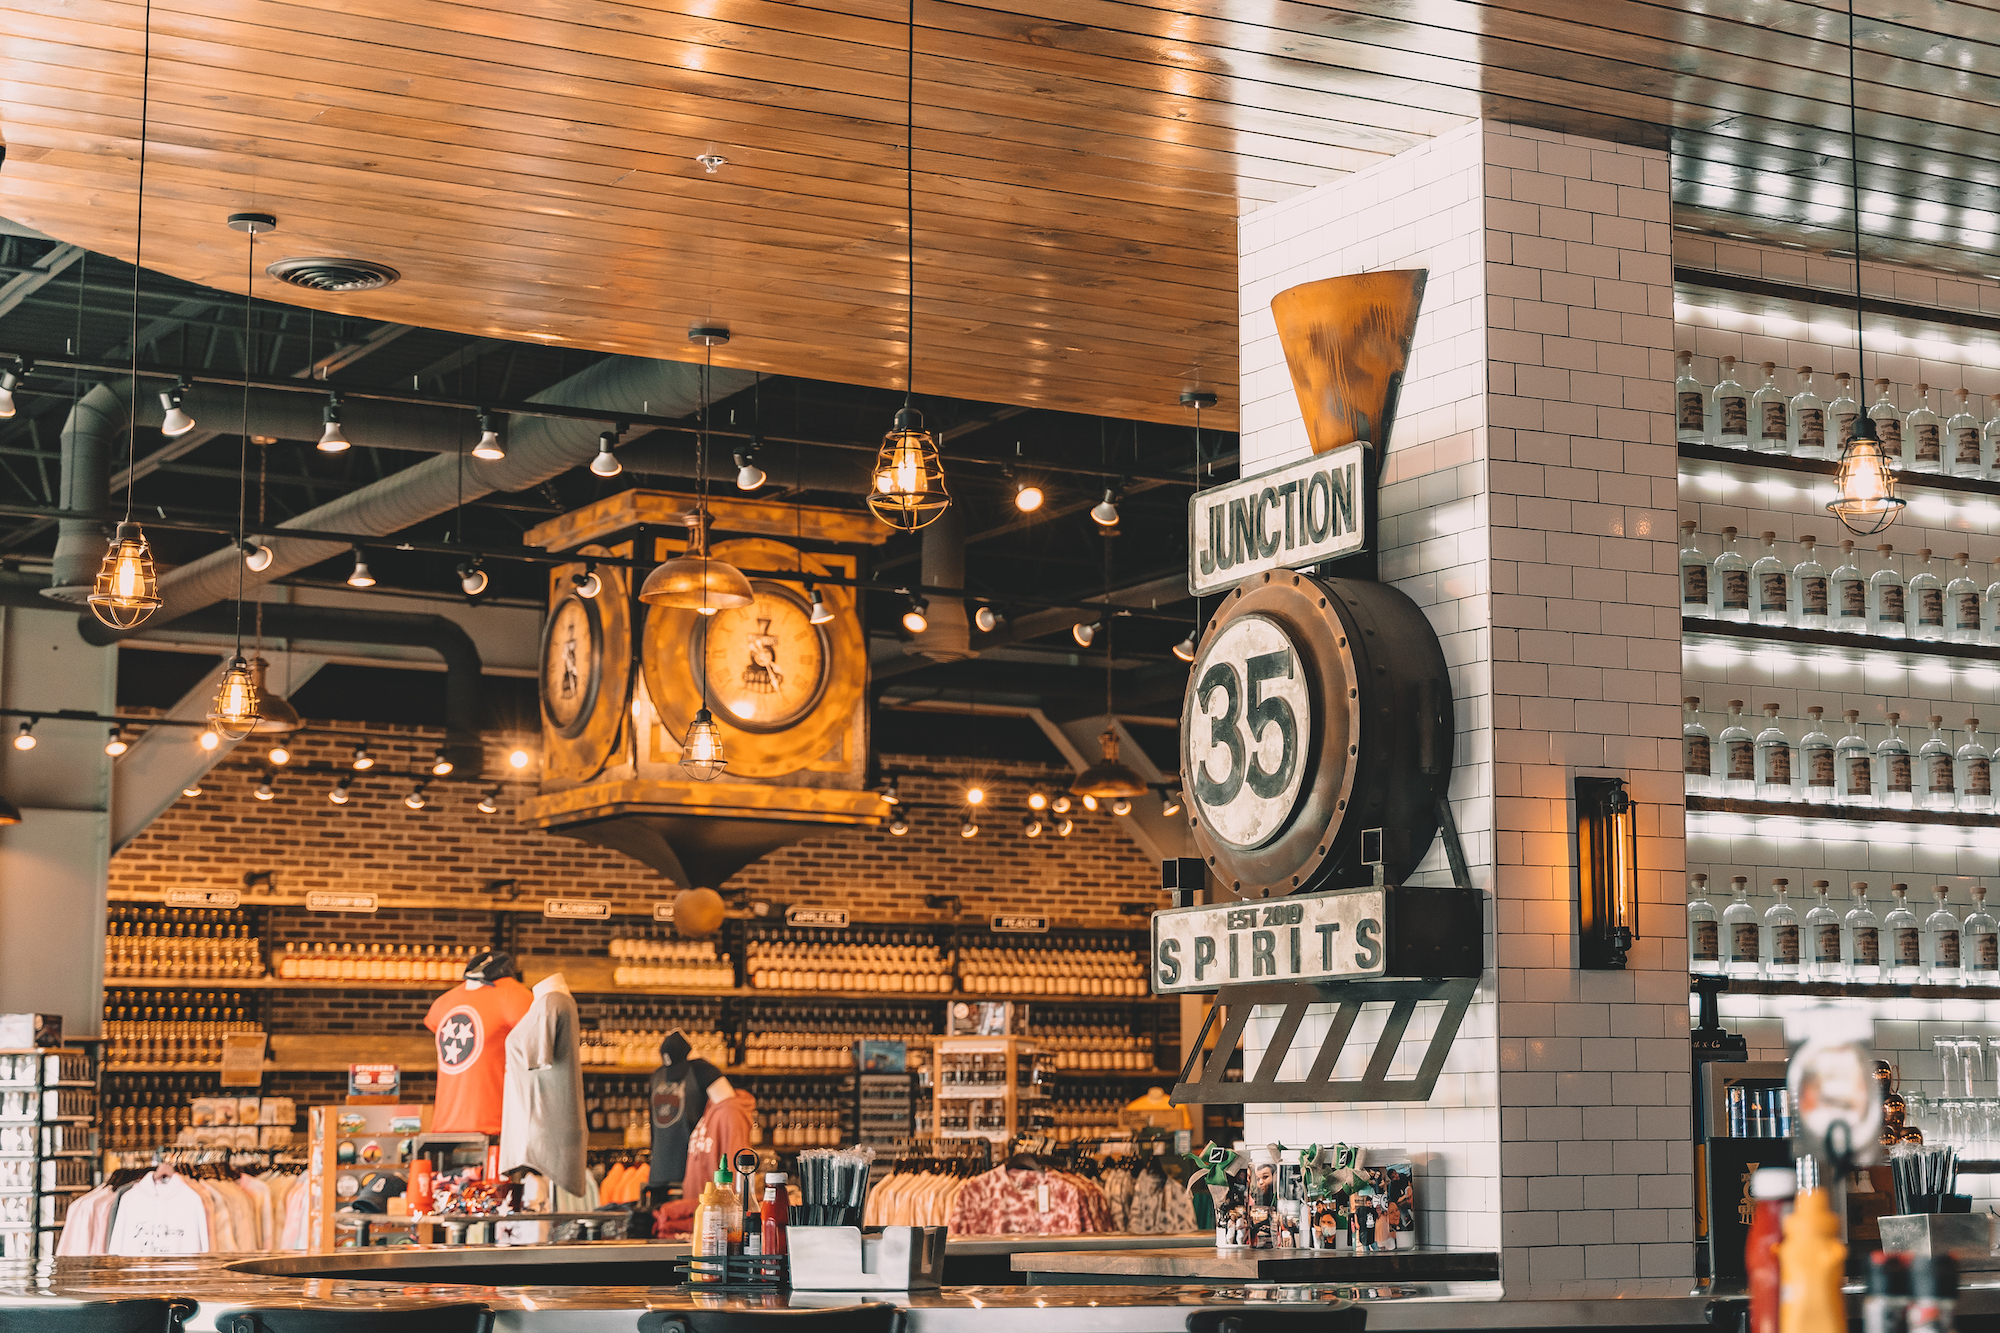 inside junction 35 spirits at the mountain mile mall  in Pigeon Forge Tennessee